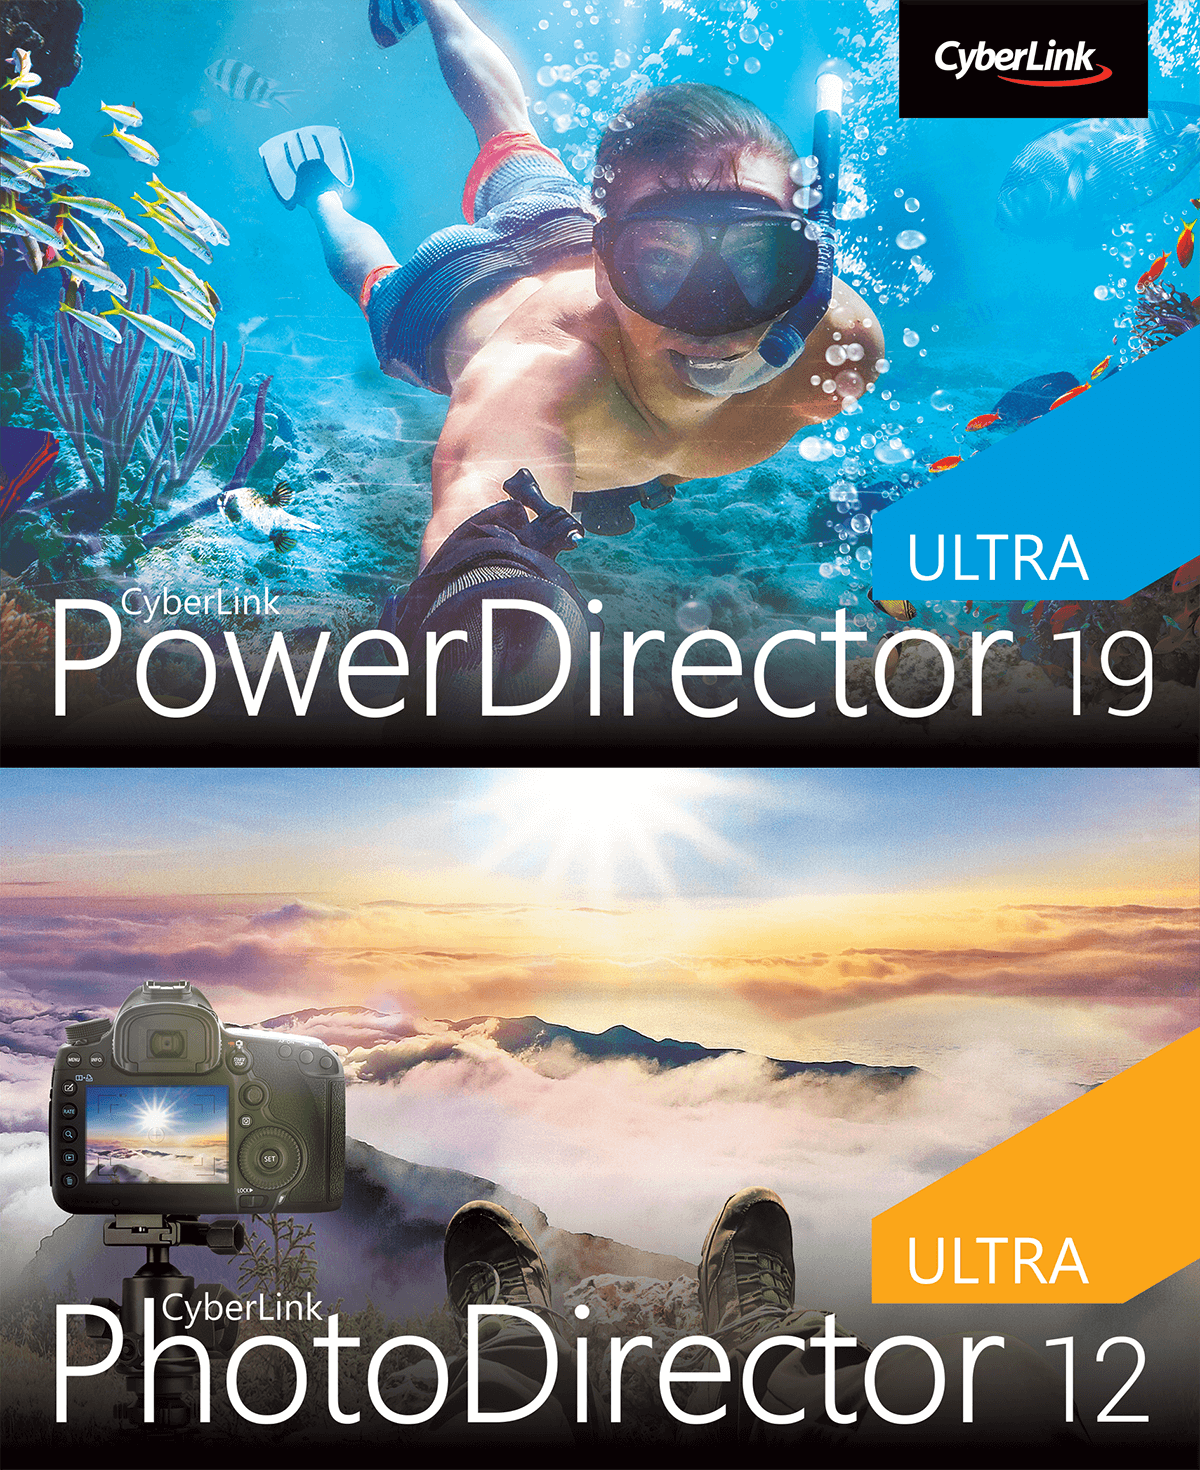 PowerDirector 19 Ultra & PhotoDirector 12 Ultra